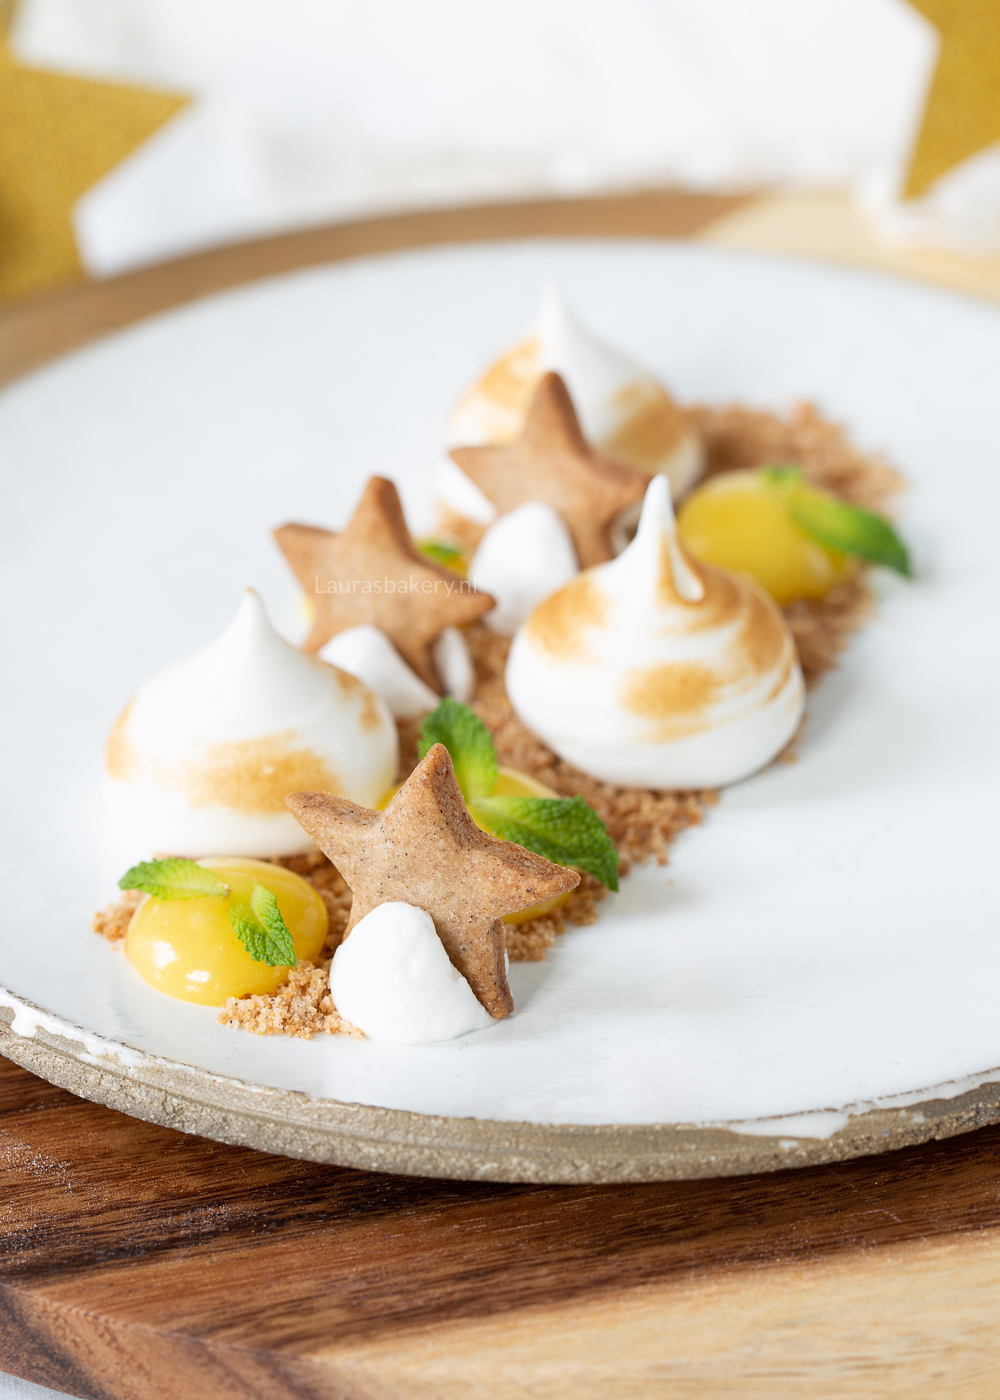 Deconstructed lemon meringue pie dessert